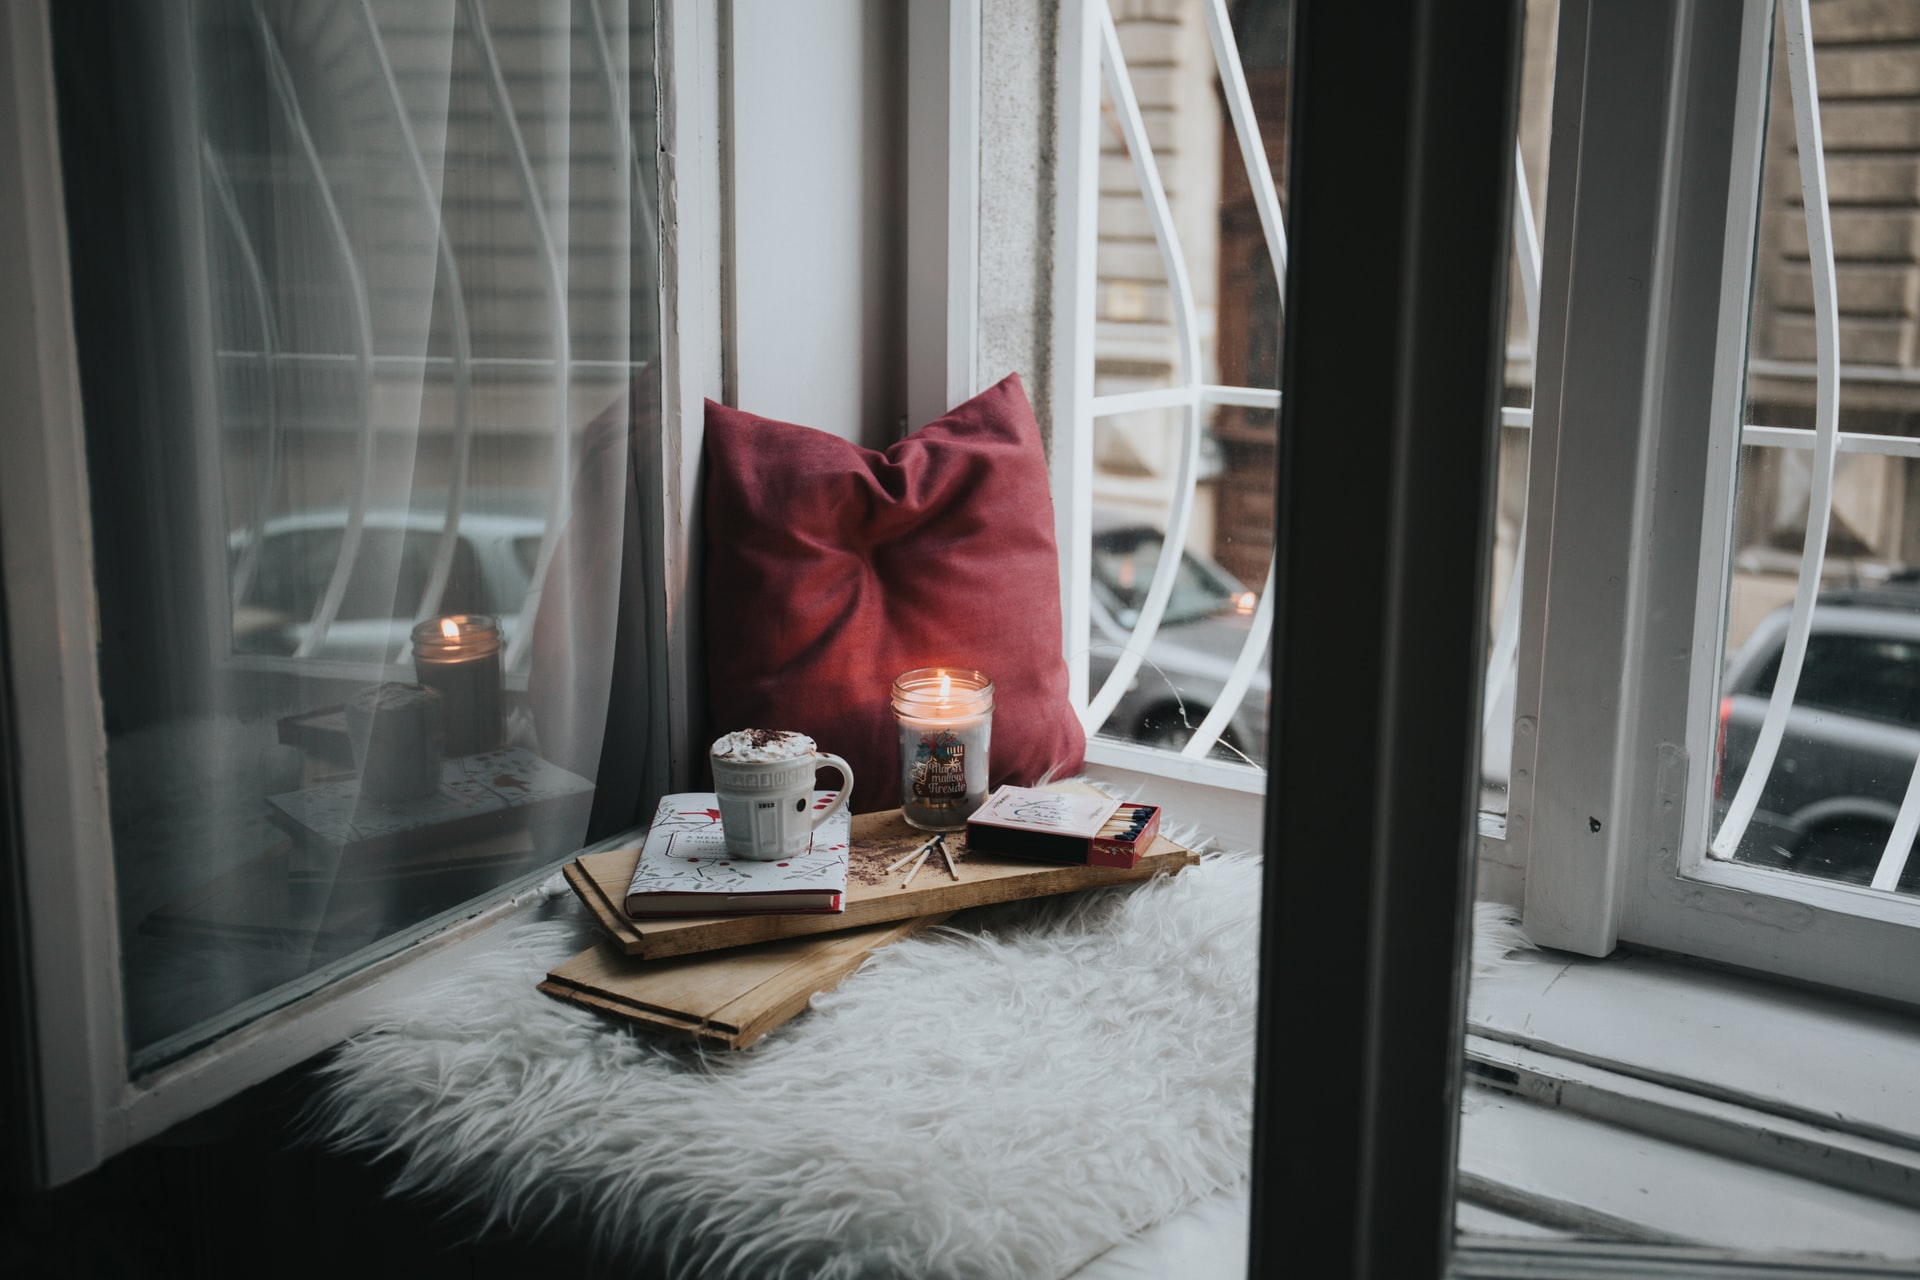 Tranquil set-up for writing your story